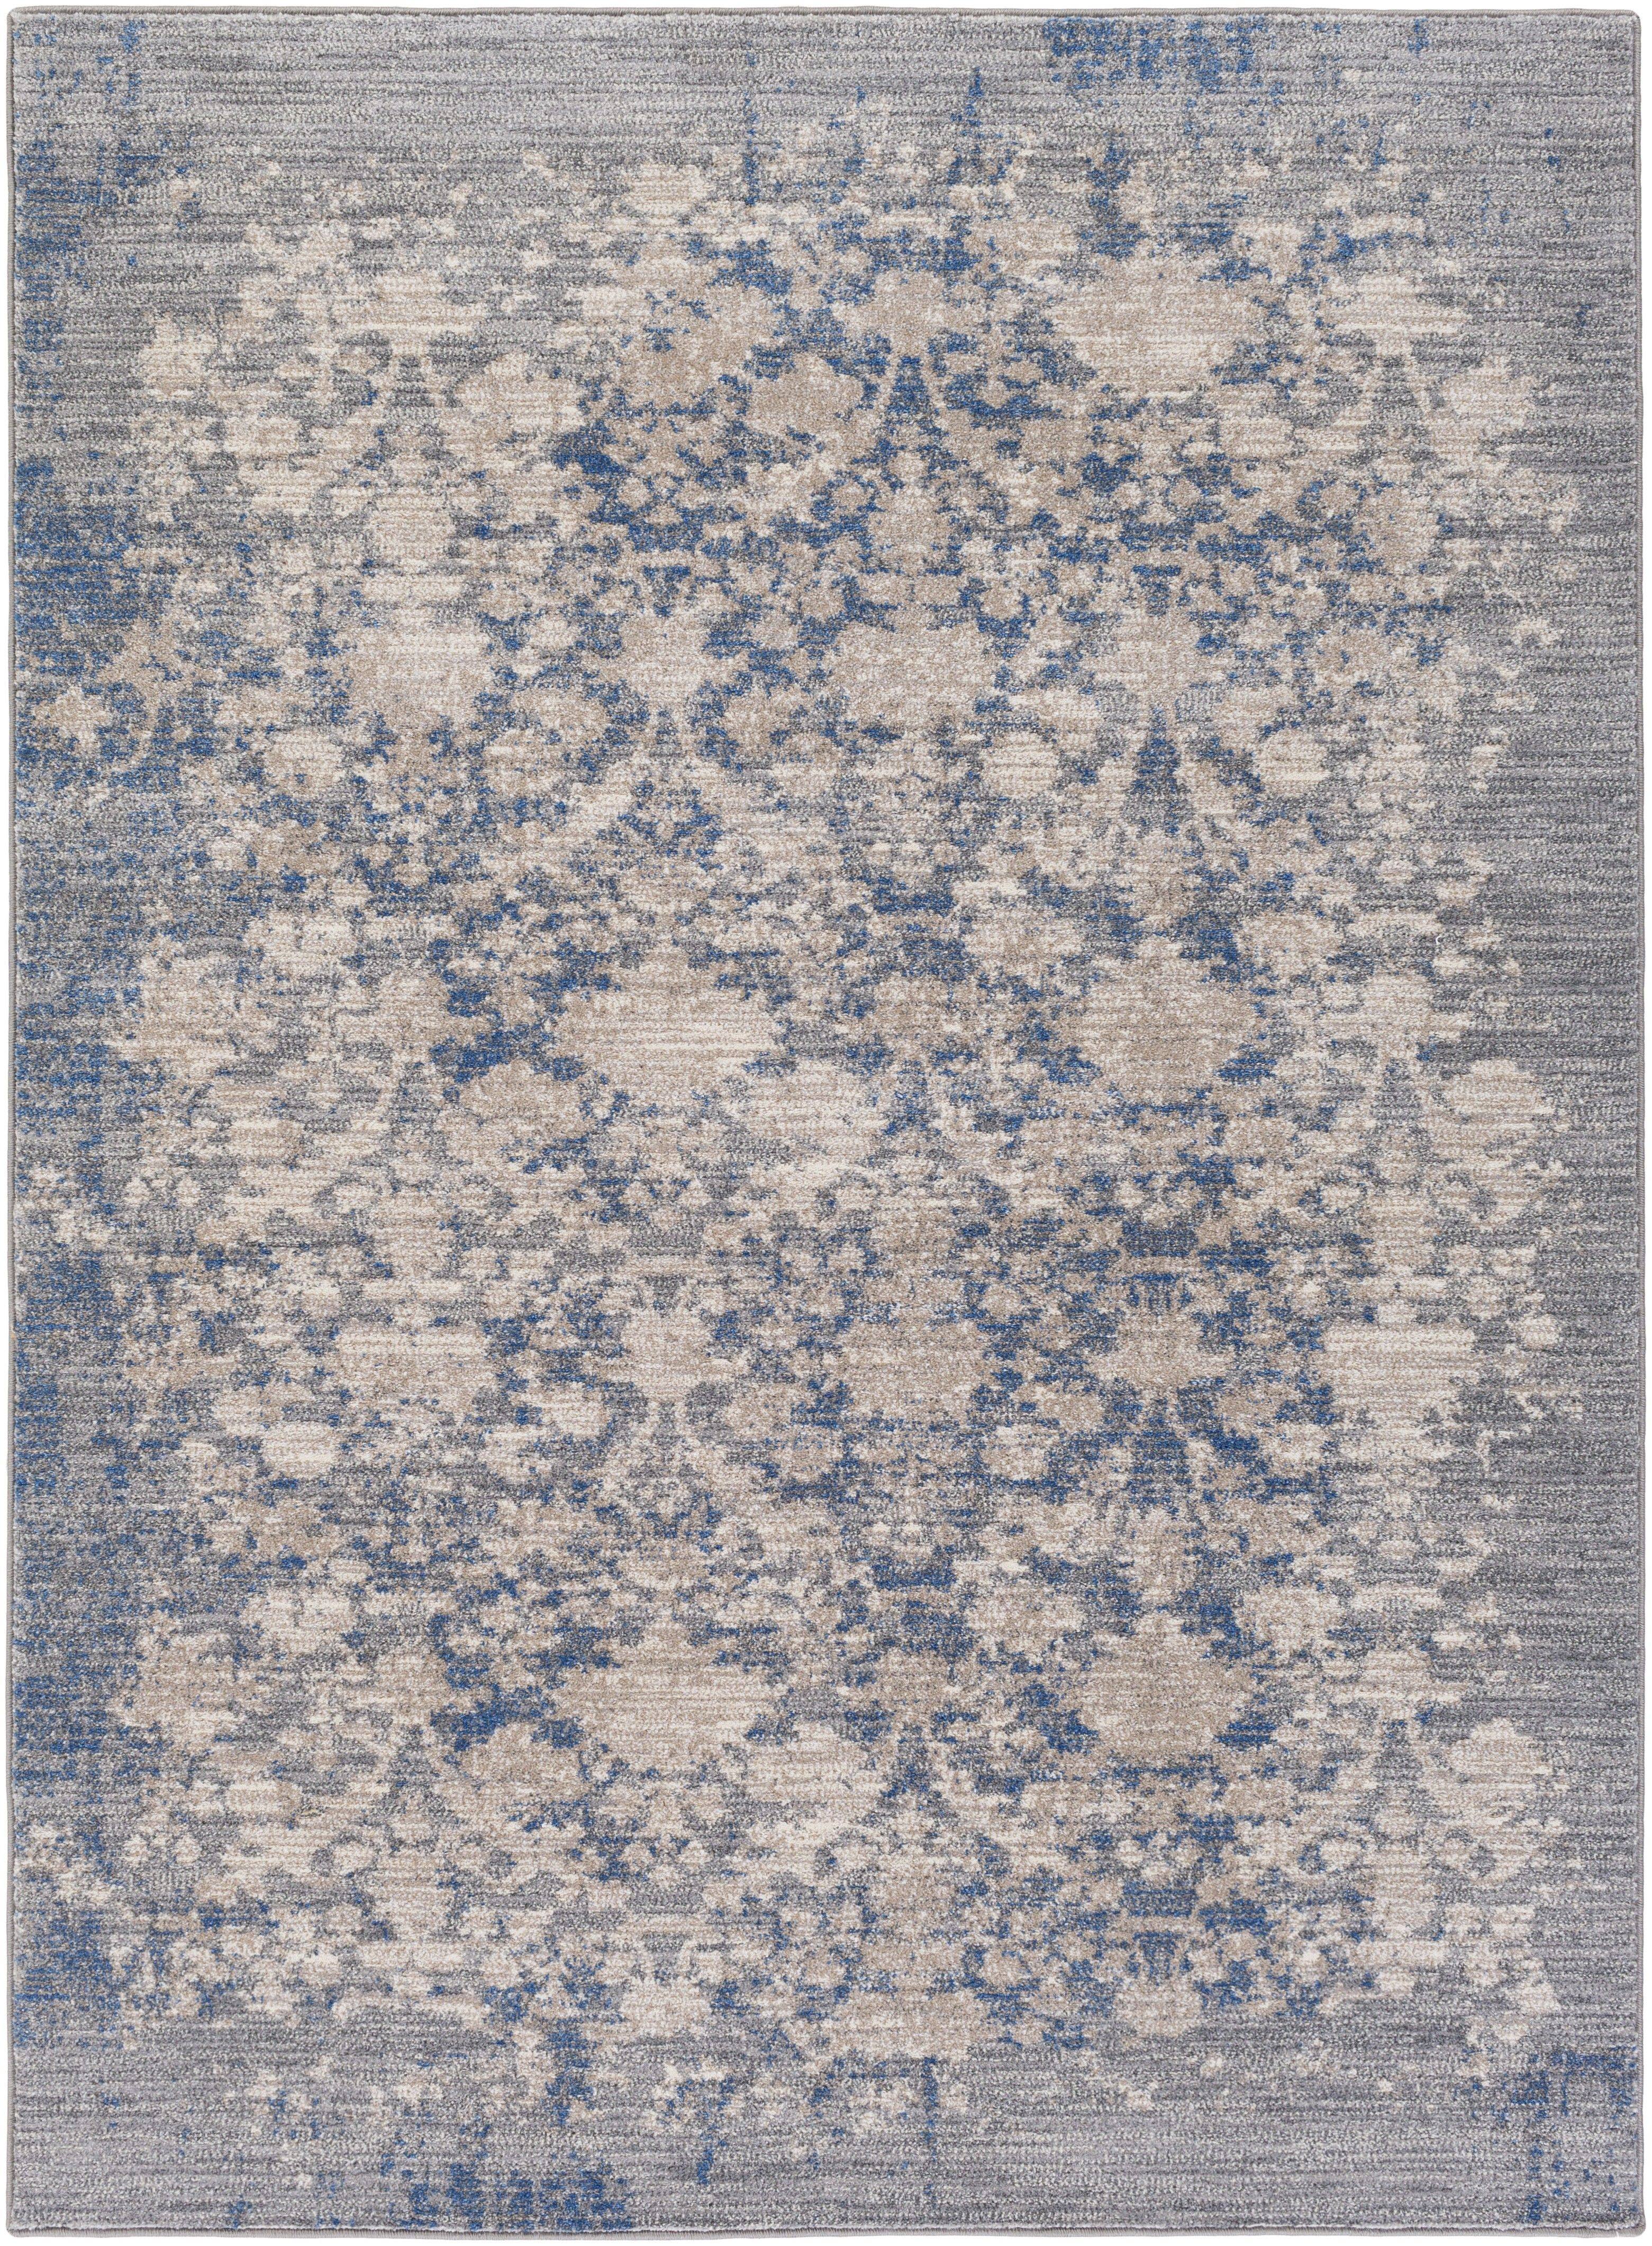 The Look Of A Worn Vintage Rug In A Soothing Gray And Blue Palette